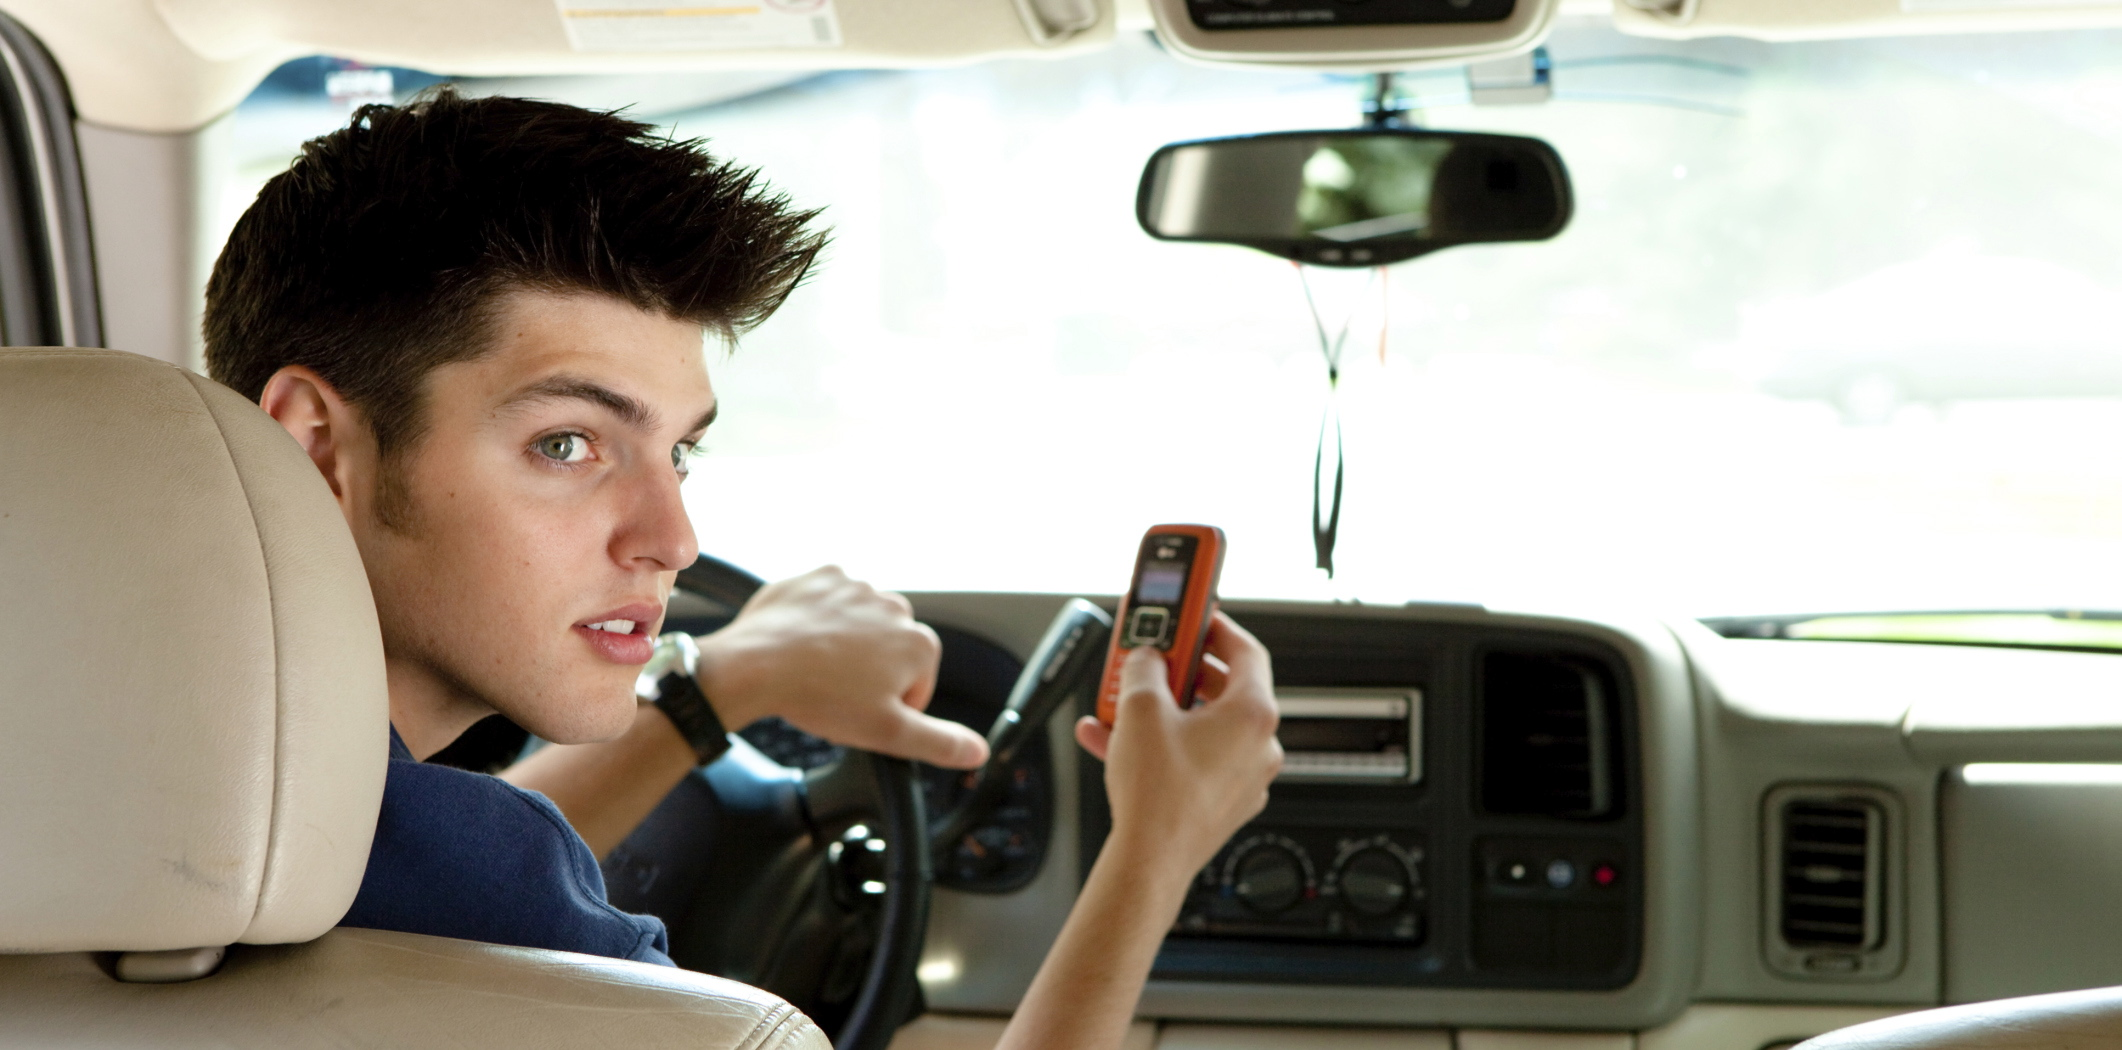 an argument against teenagers driving cars in the united states Some of the most important highway safety laws affecting teen driving and uniformly adopted by every state resulted from the united states congress legislating in order to spur state enactment these include the national minimum 21 year old drinking age, the zero tolerance blood alcohol concentration (bac) law for underage drinking and driving.